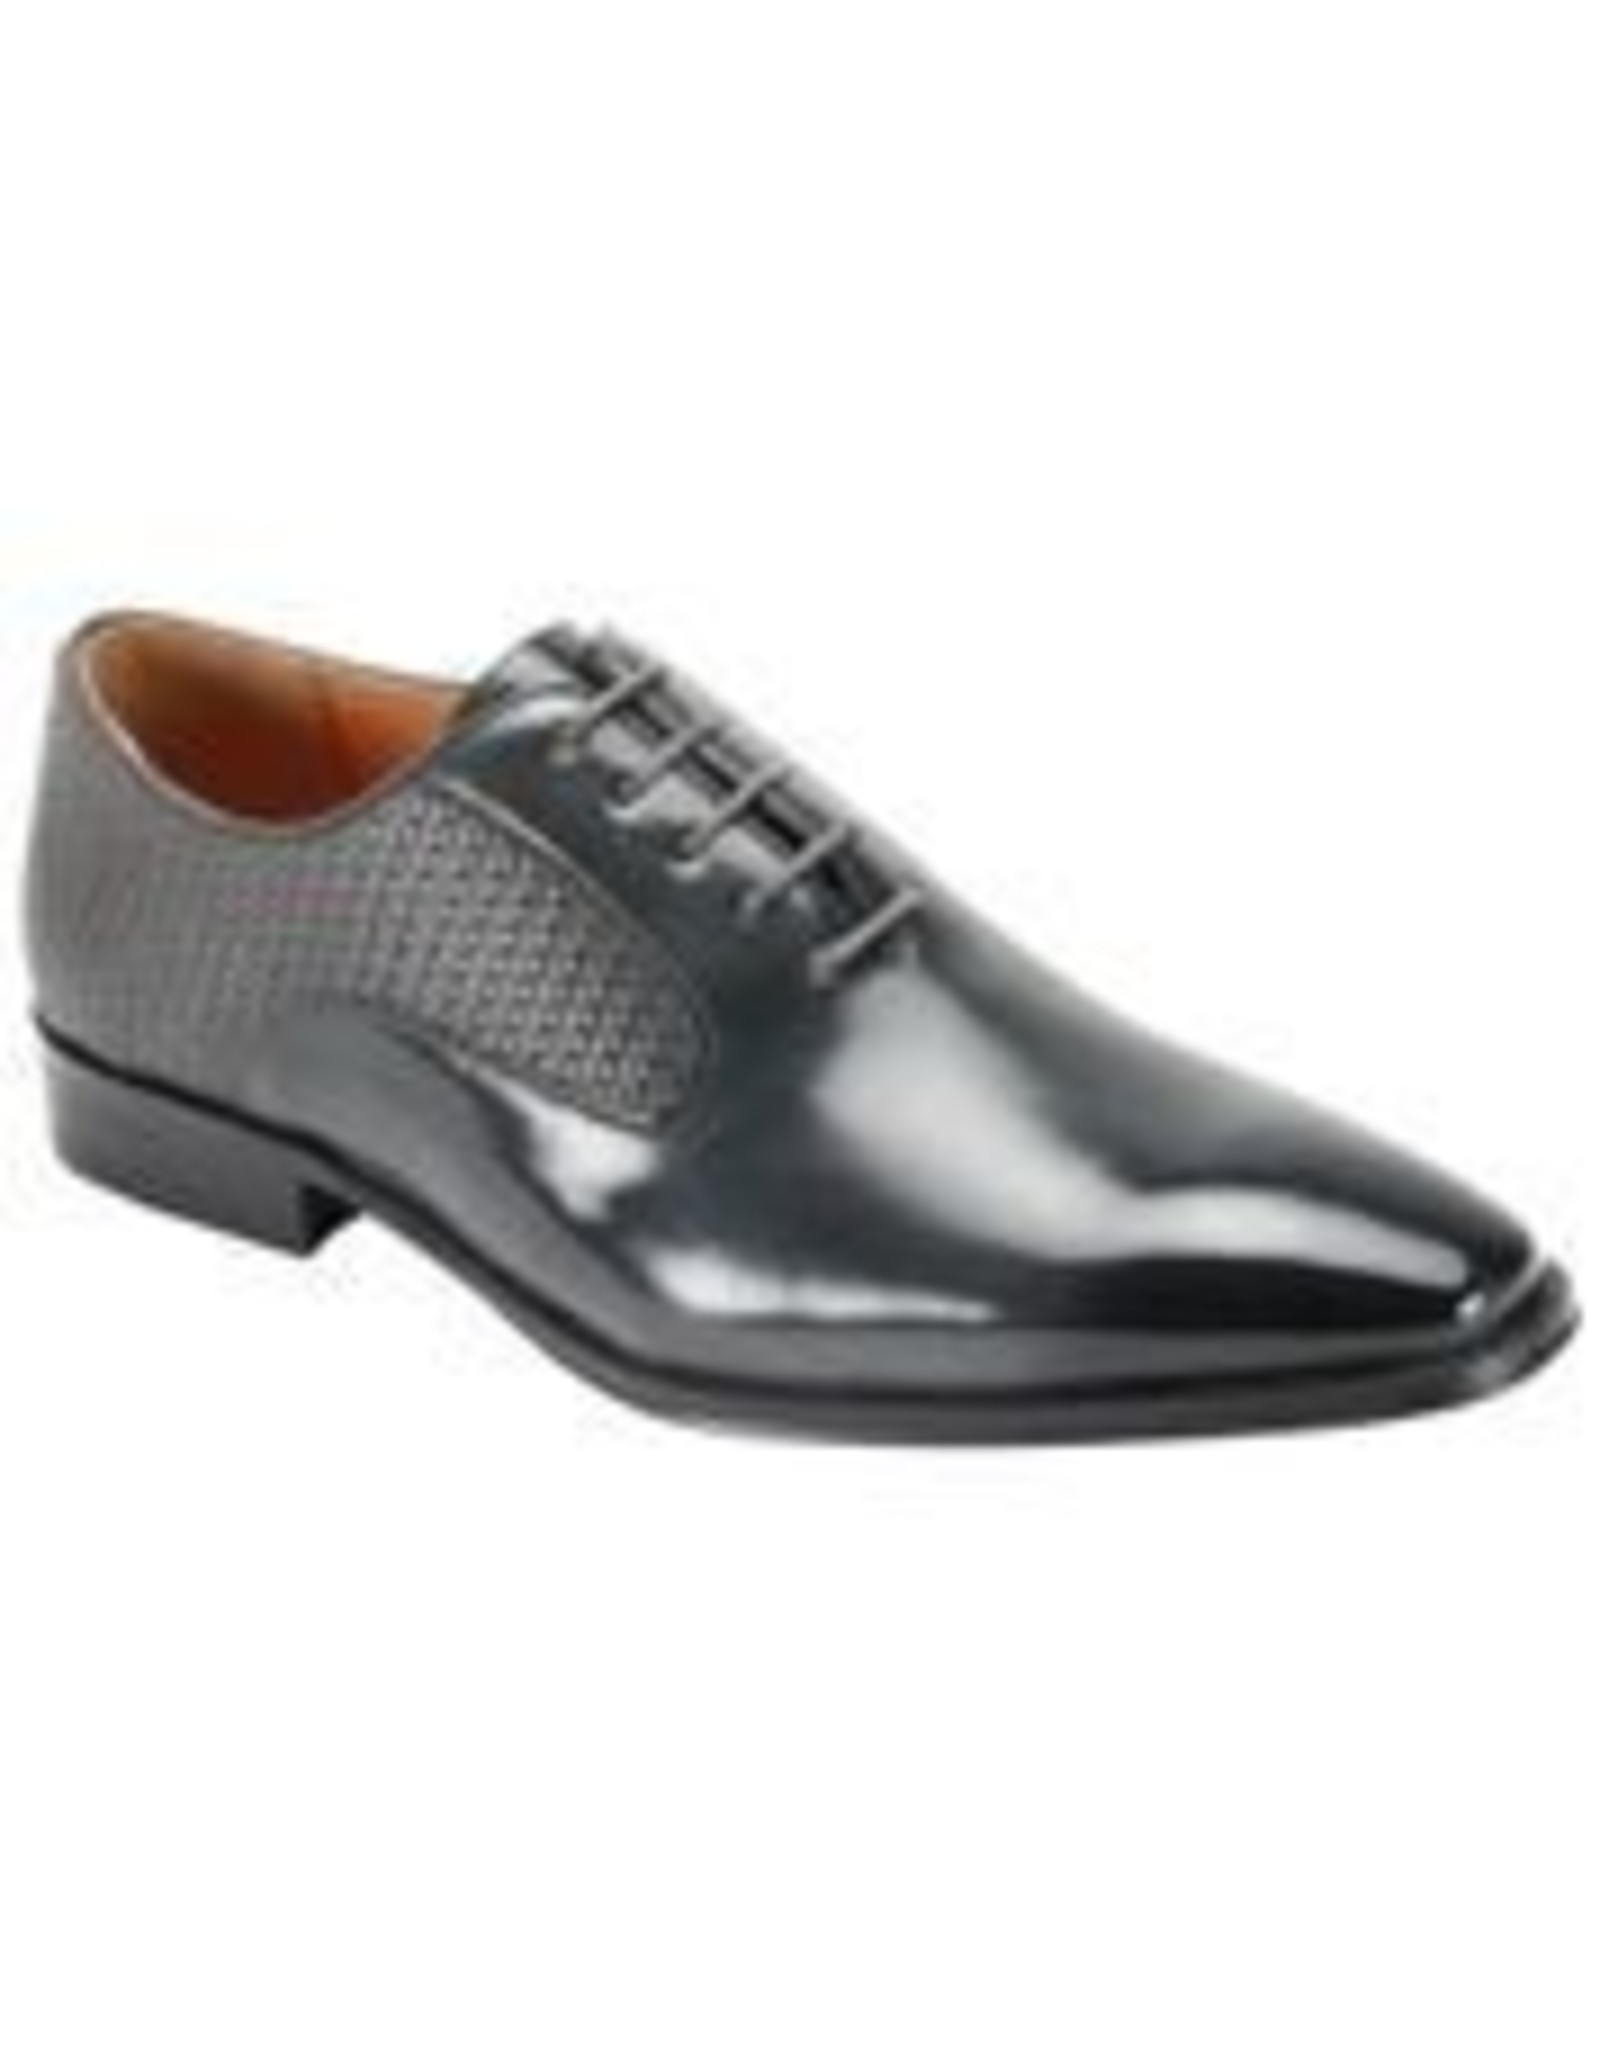 Steven Land Steven Land Dress Shoe - SL0089 Gray